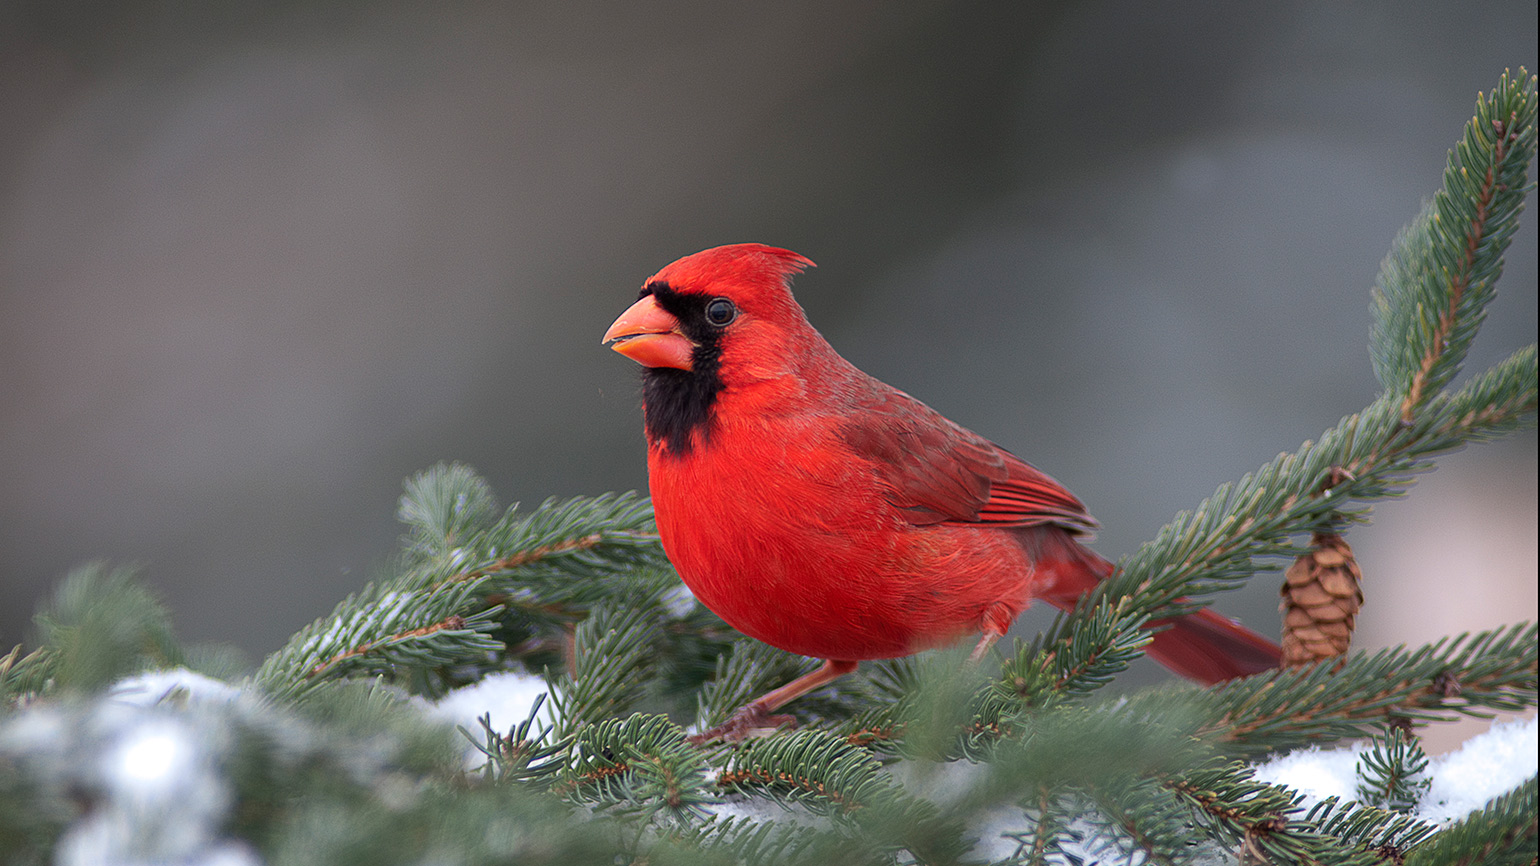 A bright red cardinal on a snow-covered tree branch